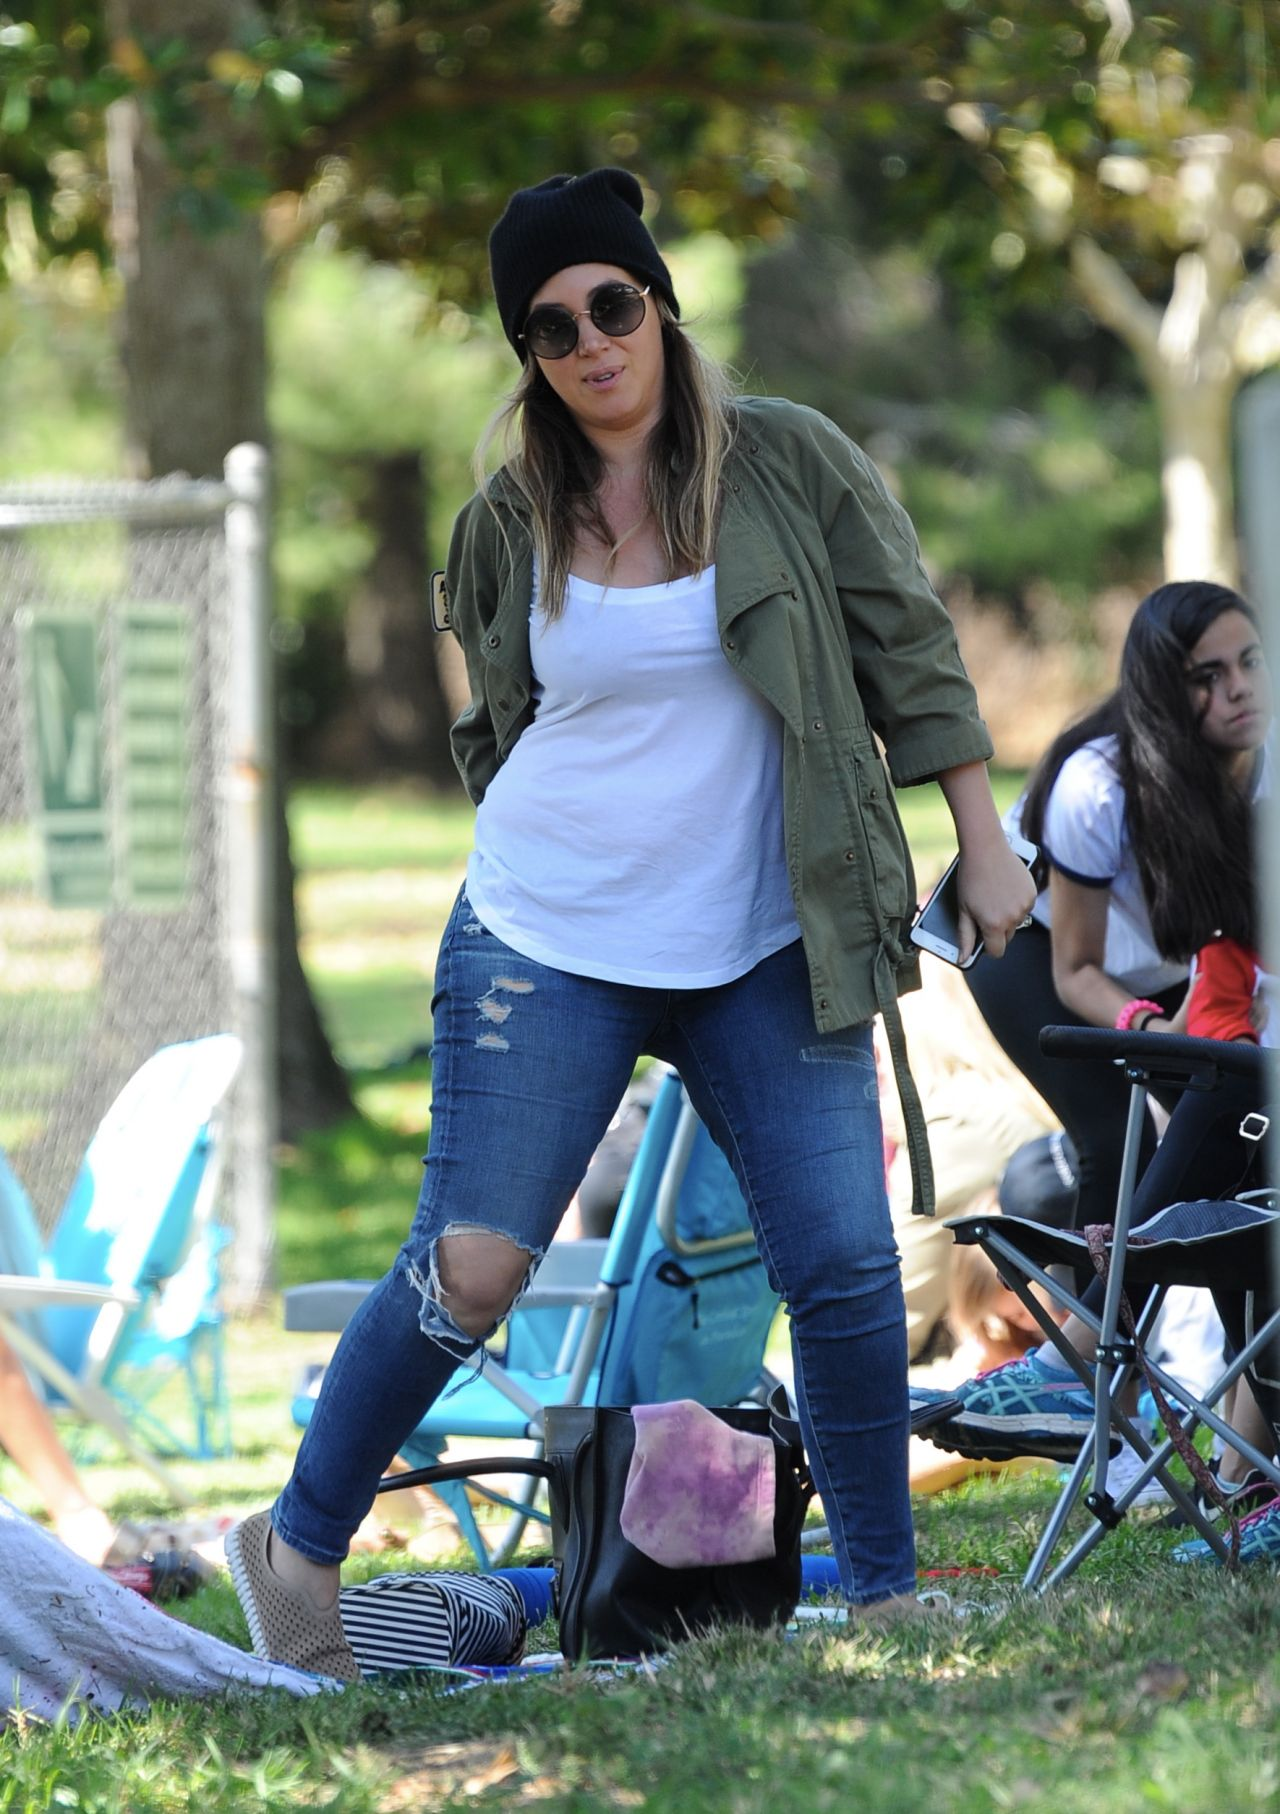 Haylie Duff At The Park In Los Angeles 09 23 2017